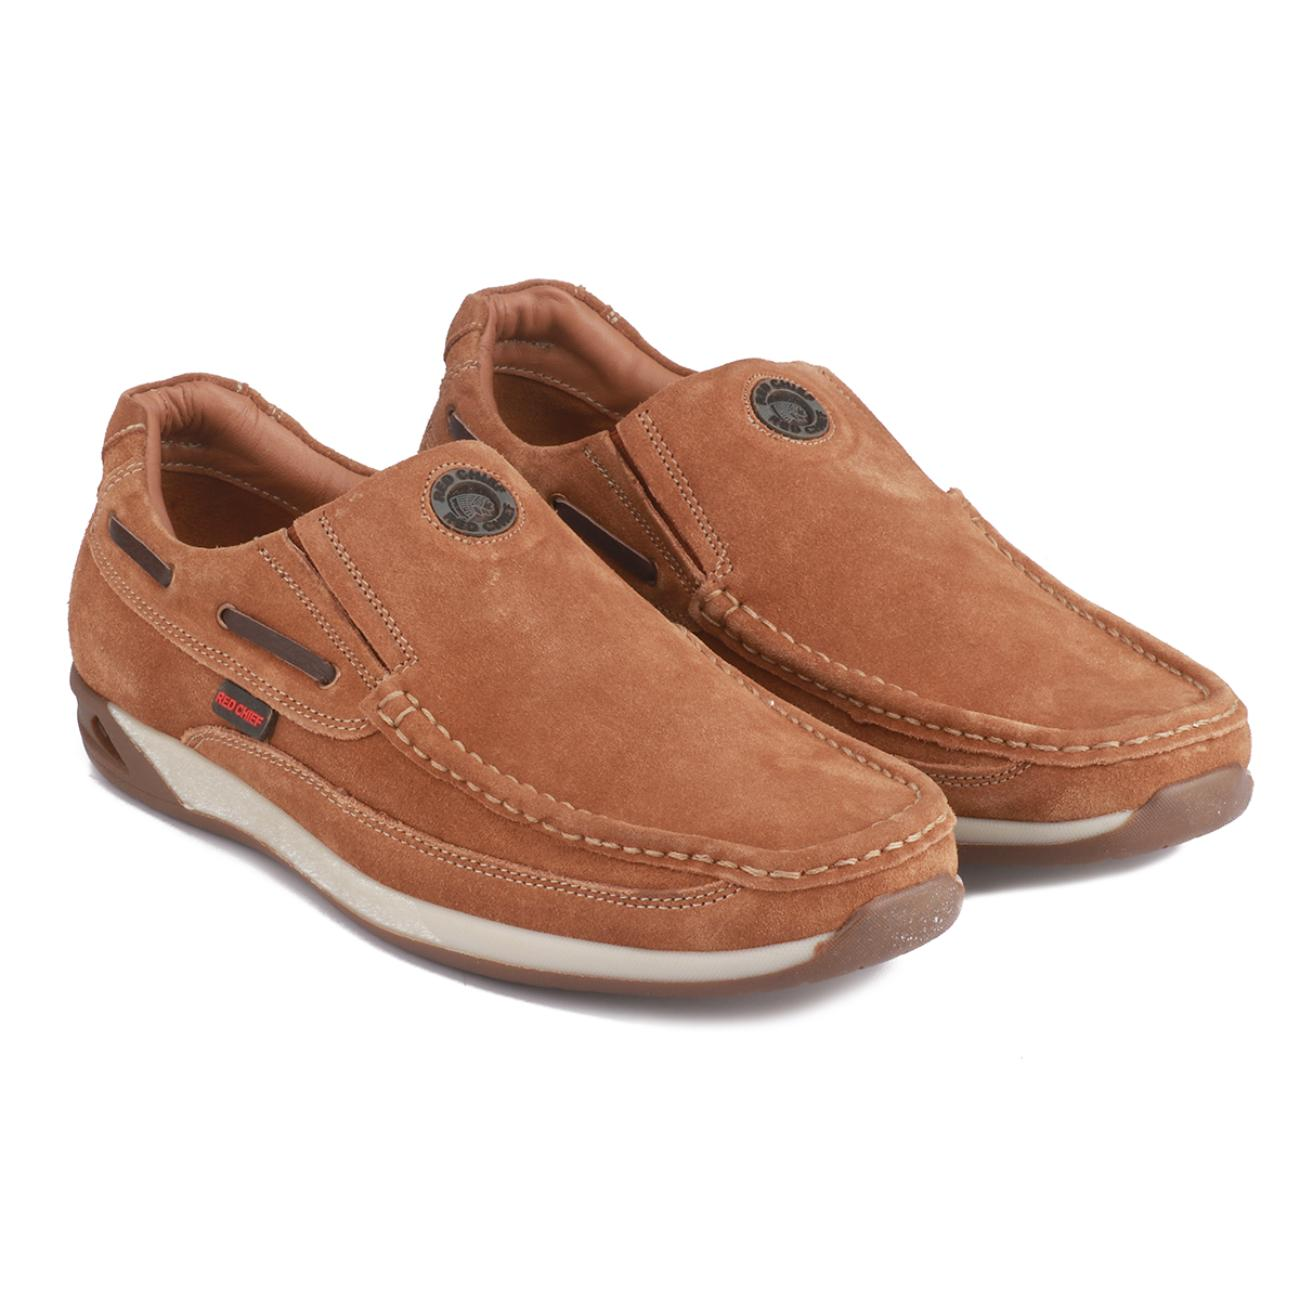 rust casual leather loafers top view